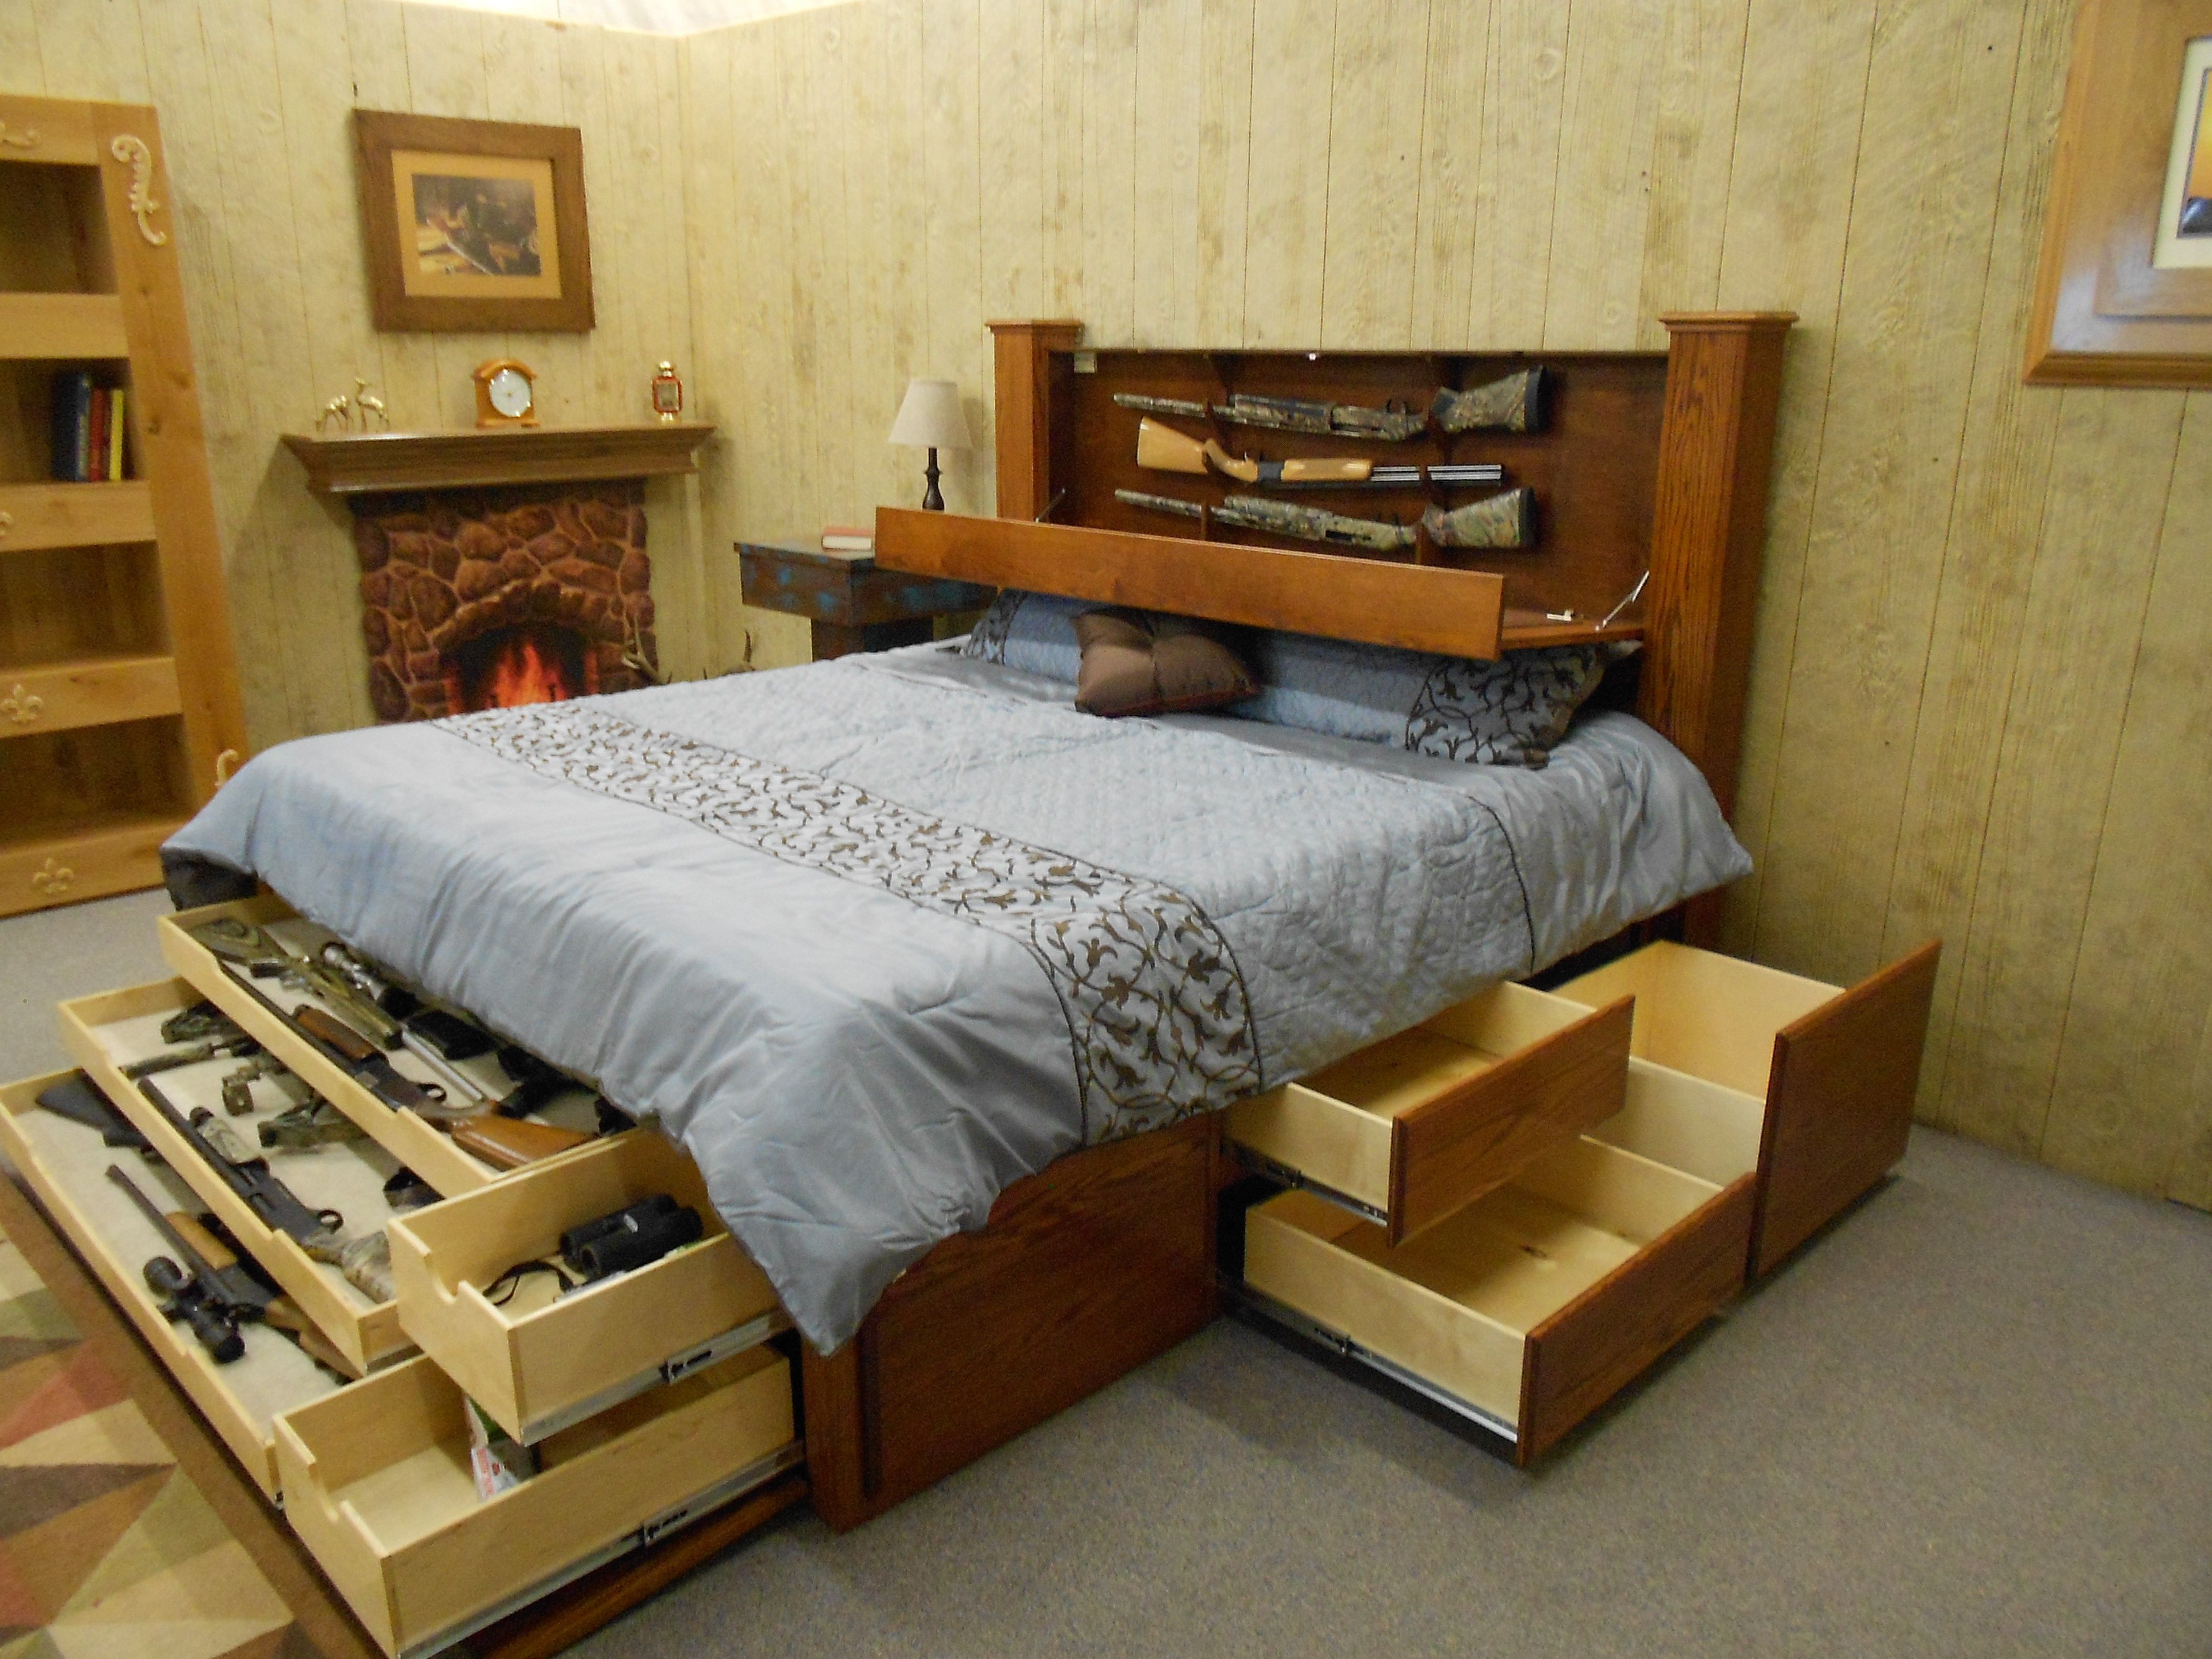 King Size Platform Bed With Storage And Bookcase Headboard | room ...